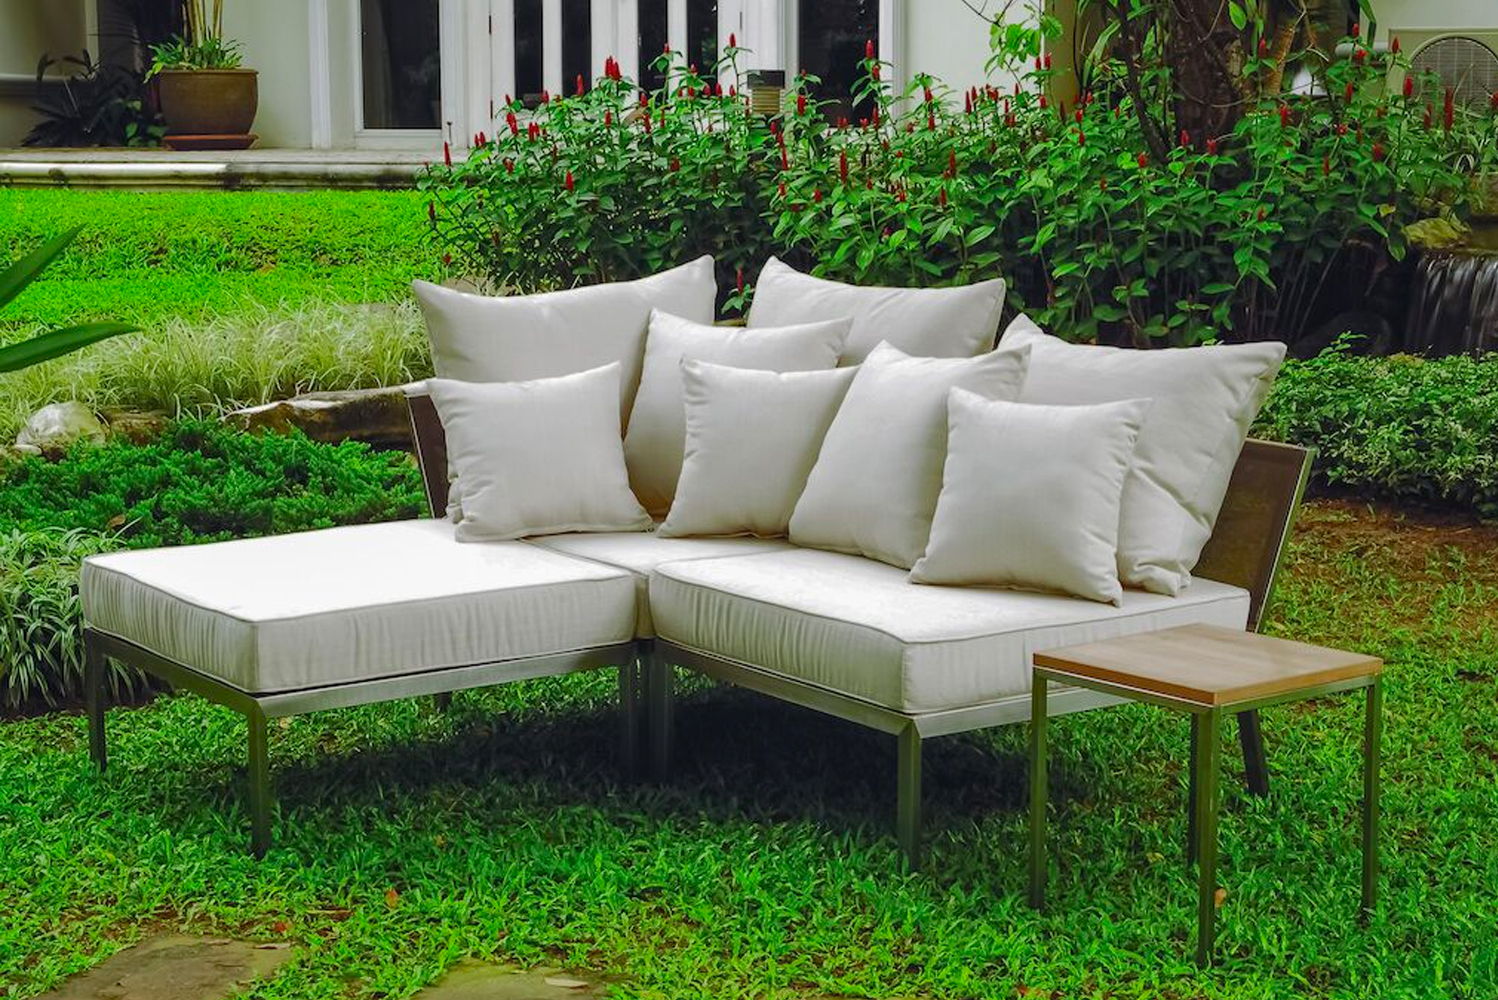 MGBlair has five outdoor hospitality collections: Haven, Atoll, Agave, Core and Slim.